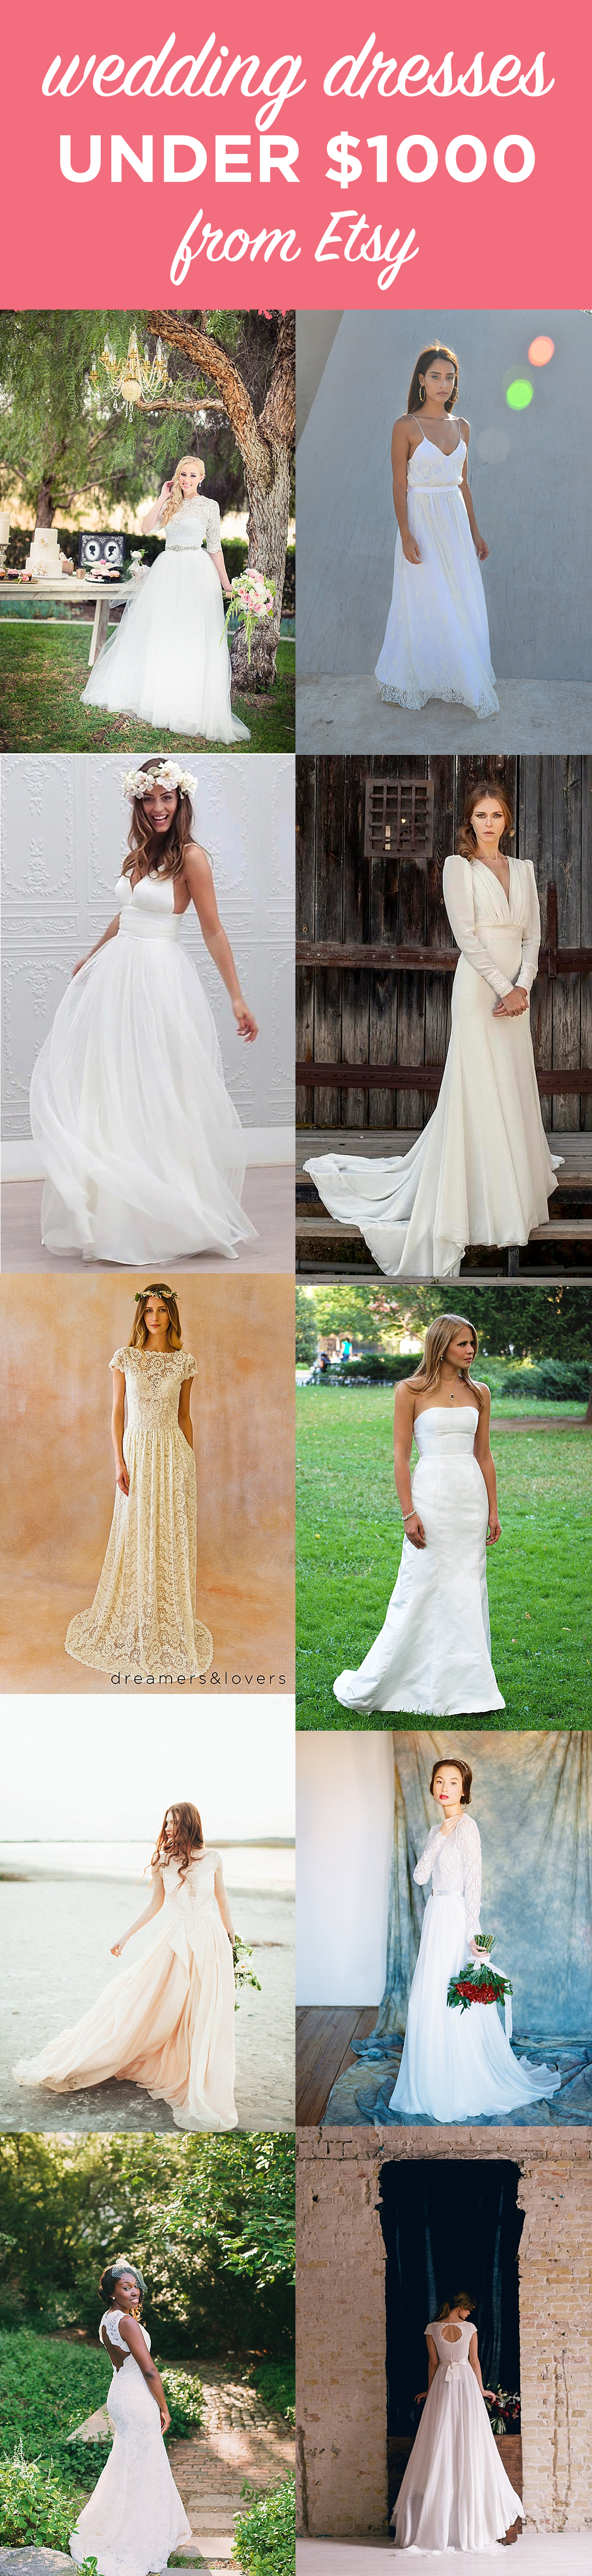 10 Gorgeous Wedding Gowns under $1000 from Etsy   The Budget Savvy Bride